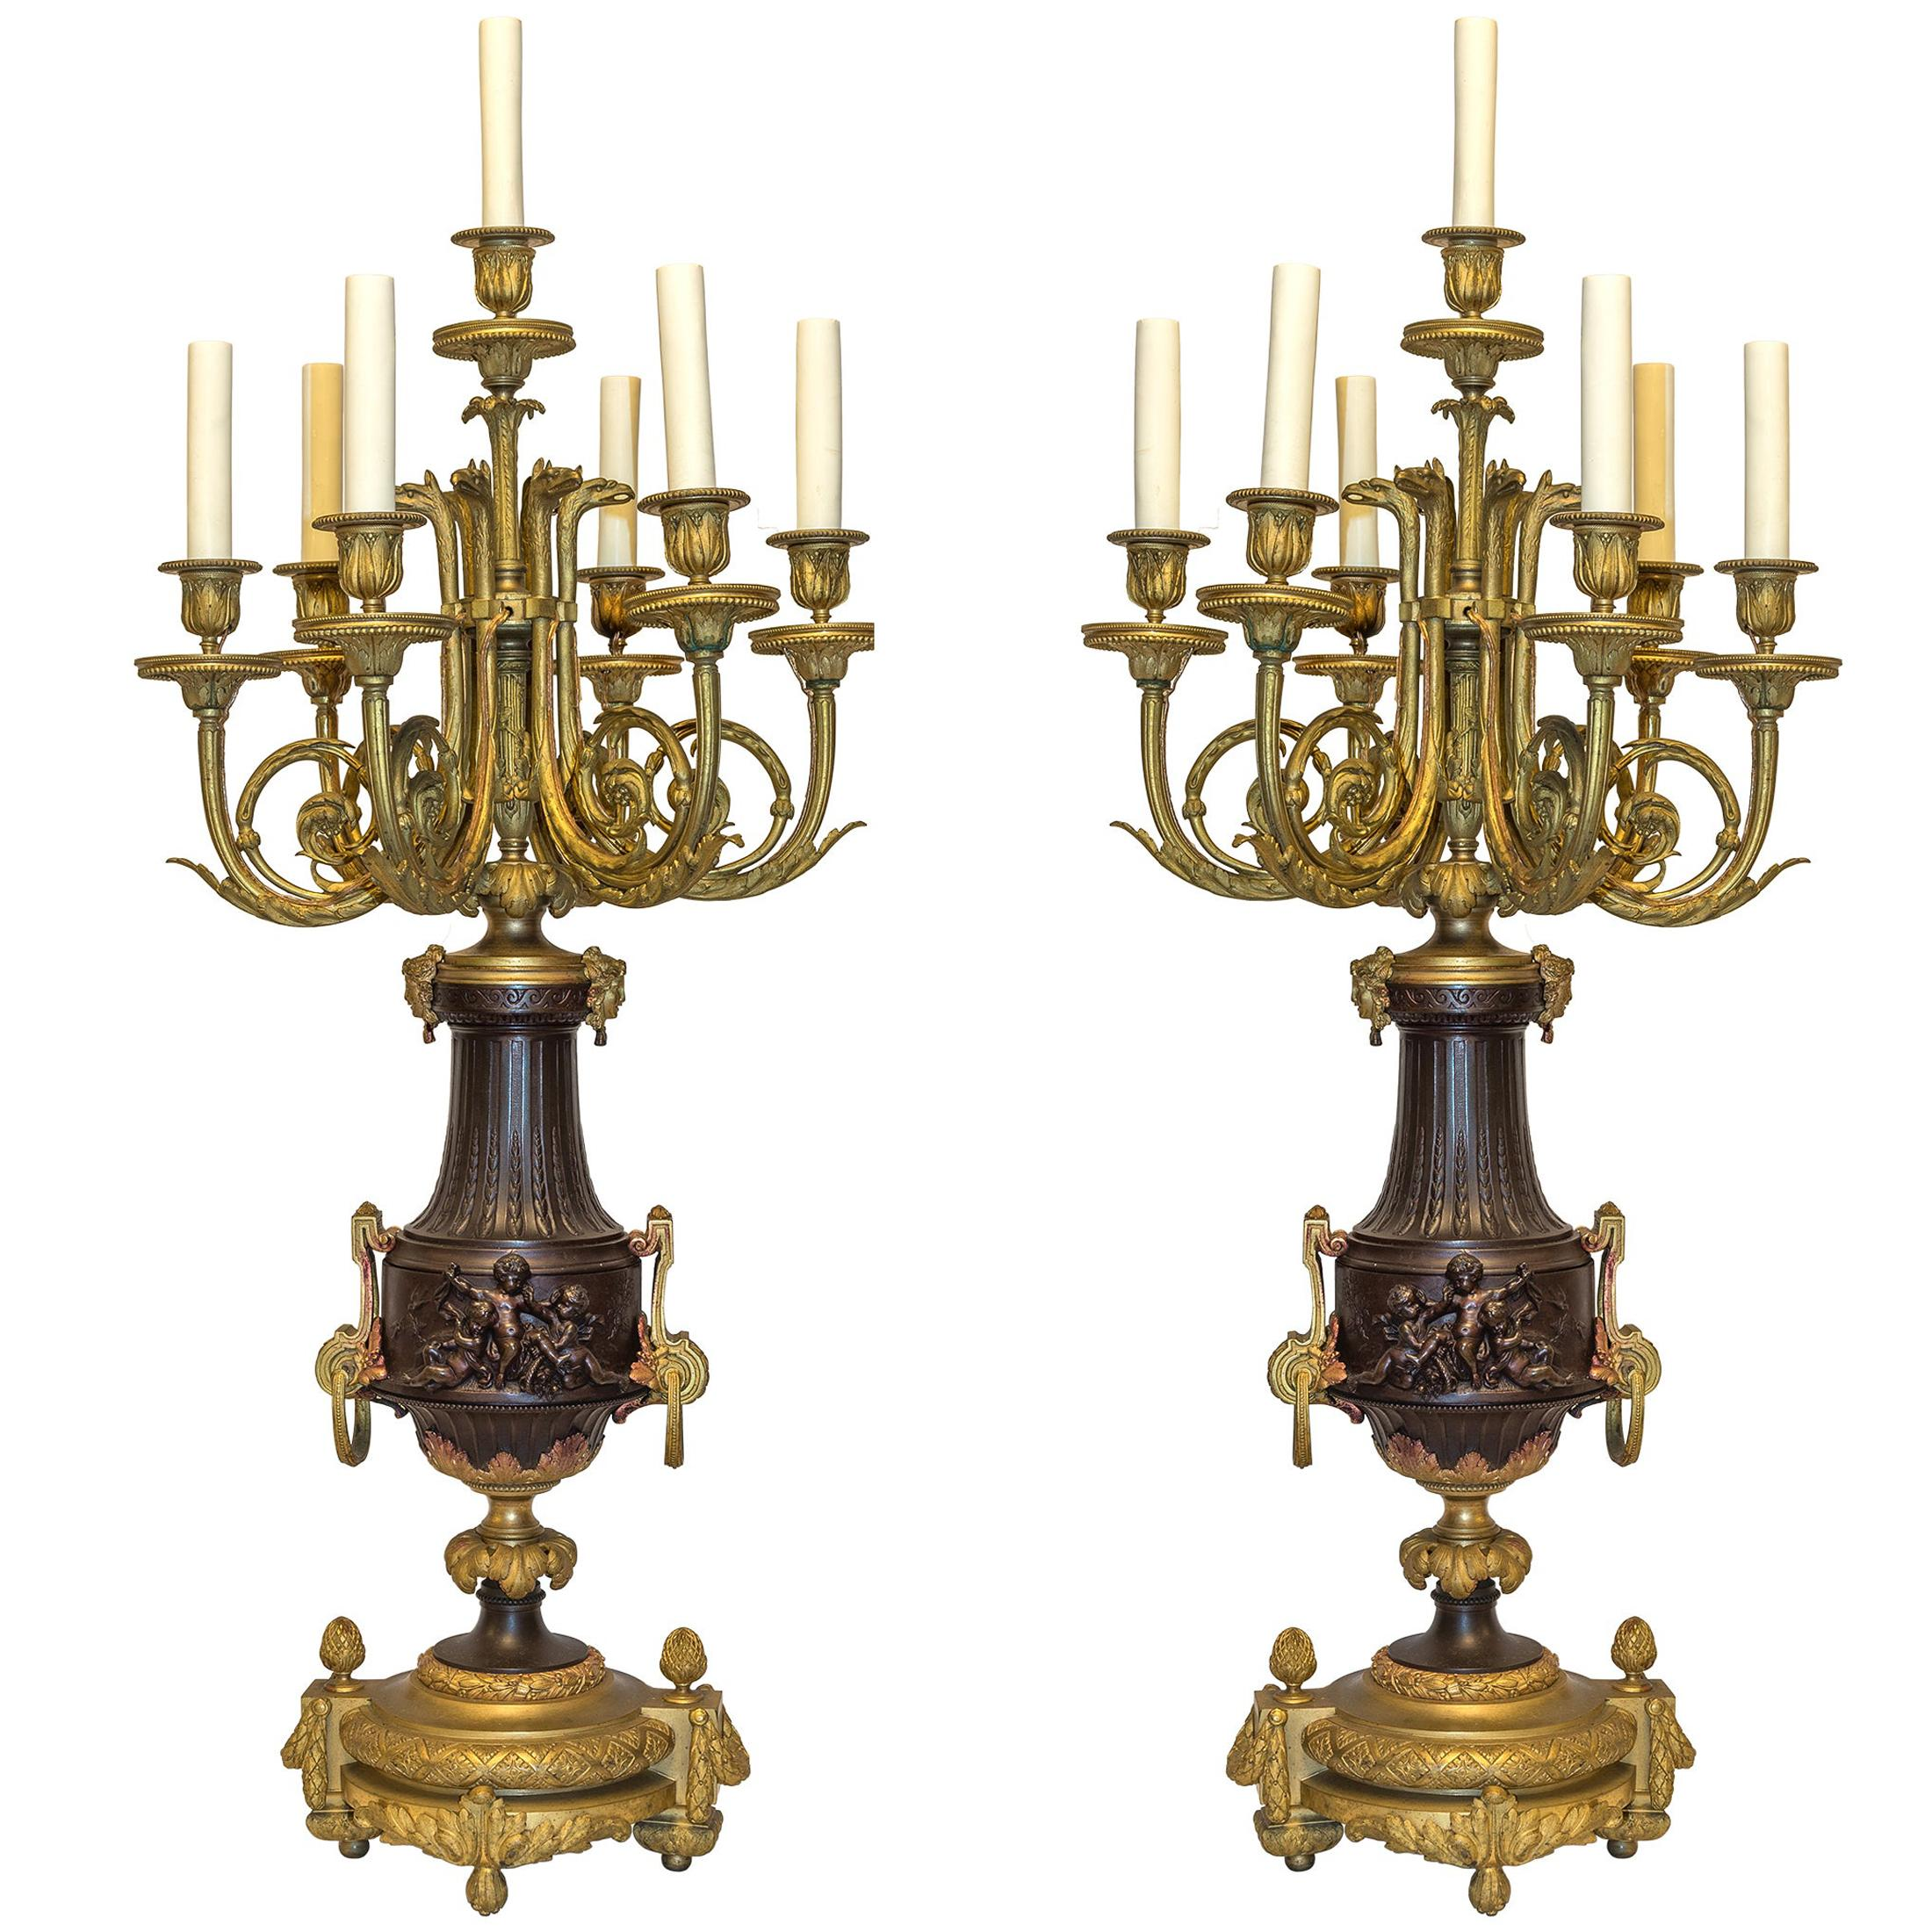 Pair of French Gilt Bronze and Patinated Bronze Seven-Light Figural Candelabra